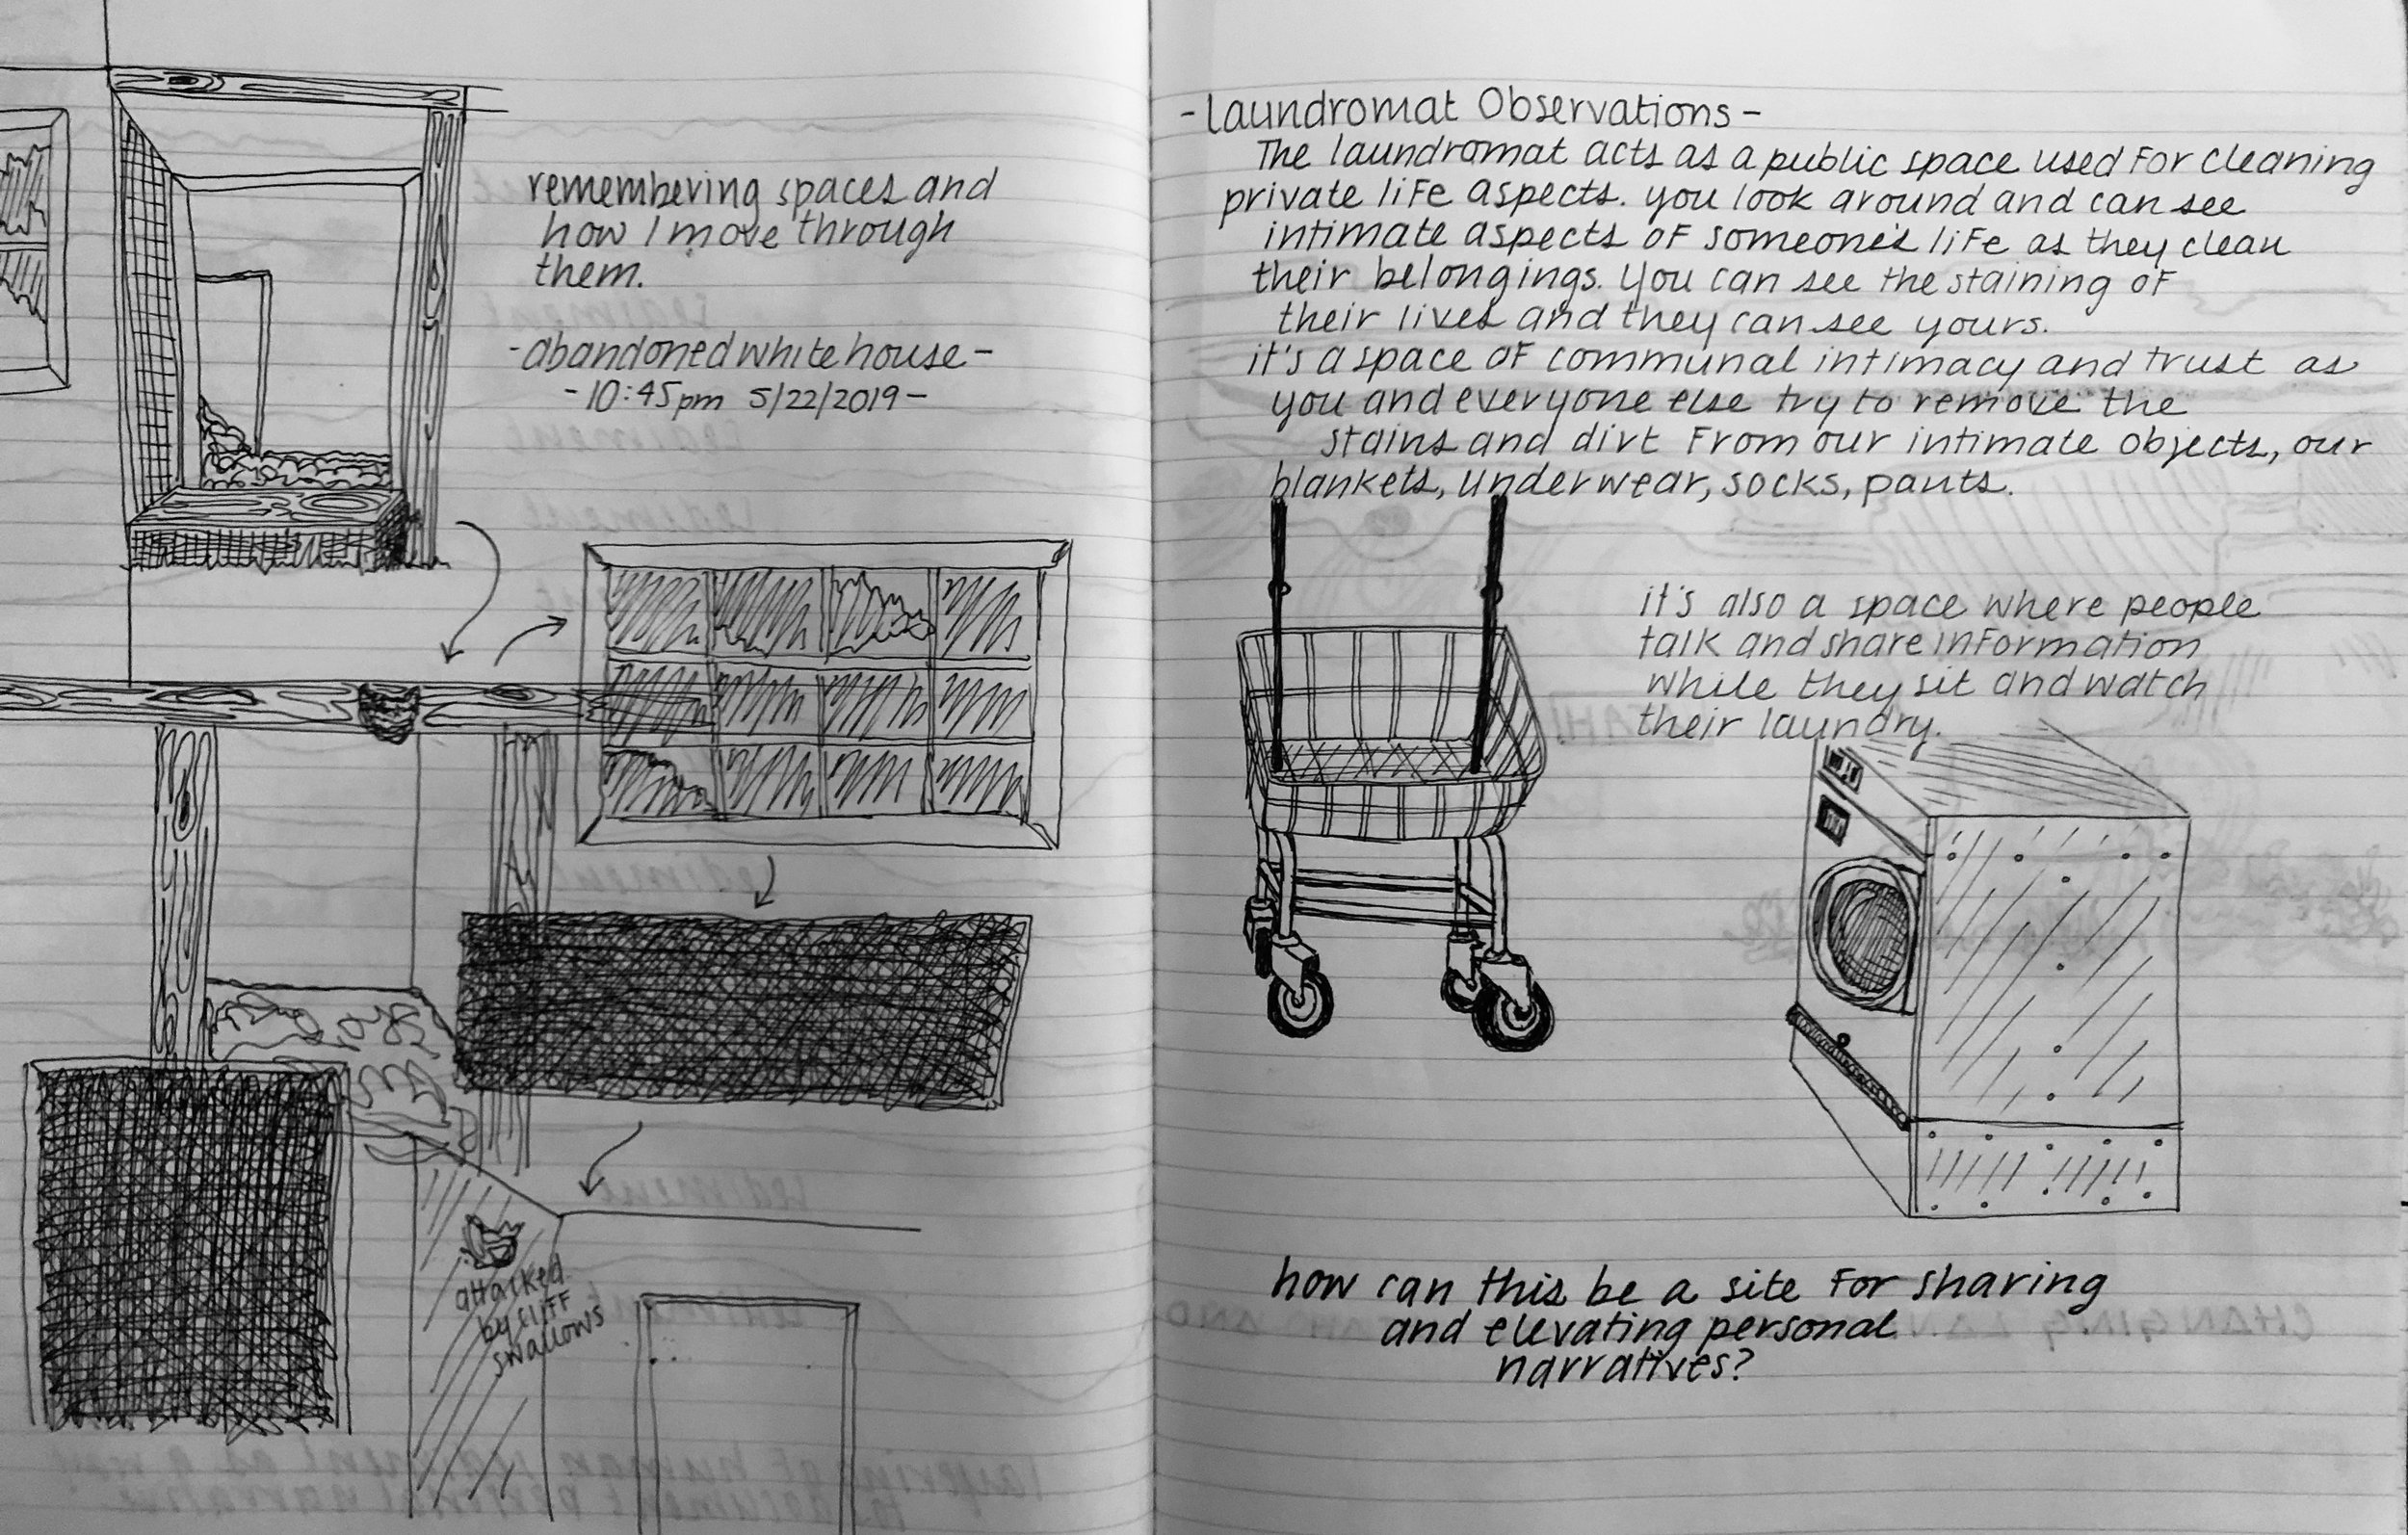 These two pages explore different spaces in Antonito, Colorado. One page shows a diagram I drew from memory recounting how i moved through an abandoned house. The other page shows my thoughts and sketches while in a laundromat.